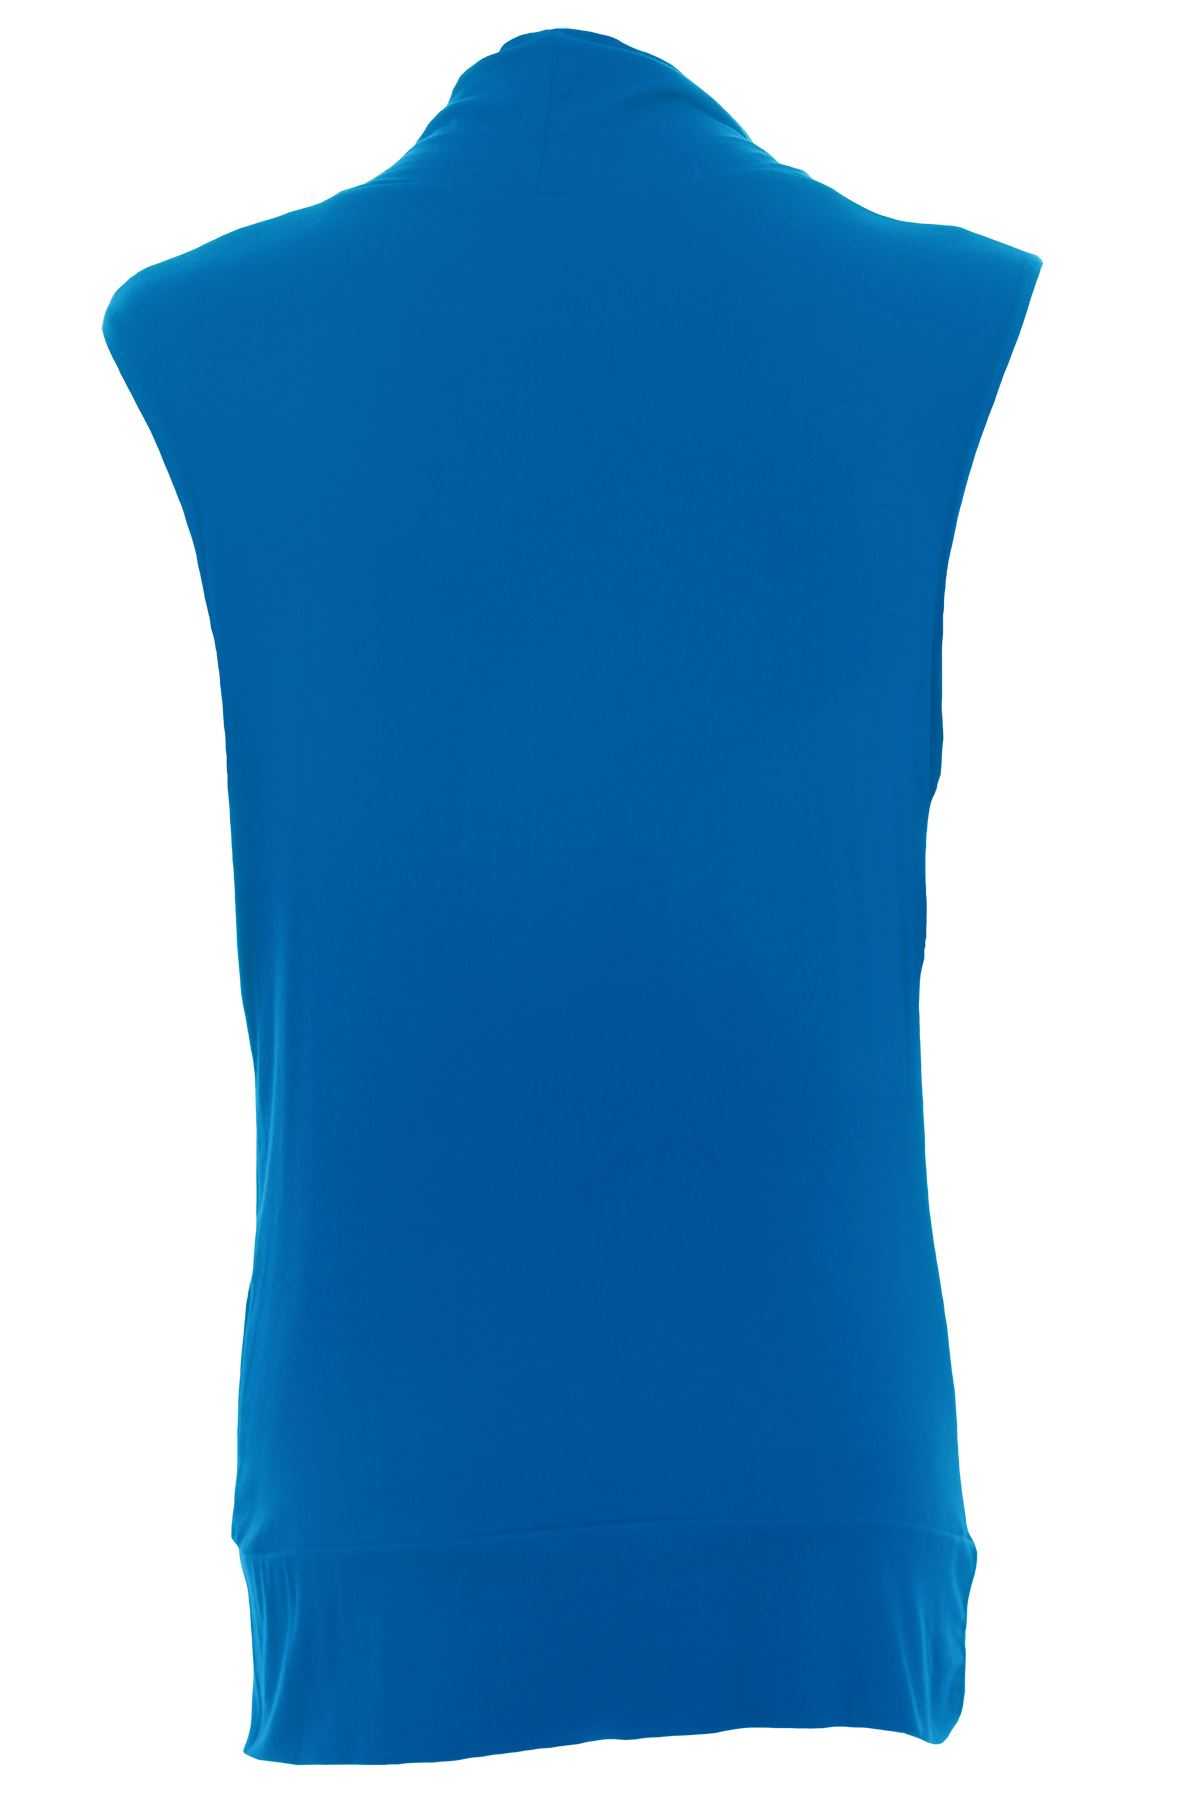 Ladies Gathered Cowl Neck Stretch Sleeveless Long Women's Plus Size top 16-26